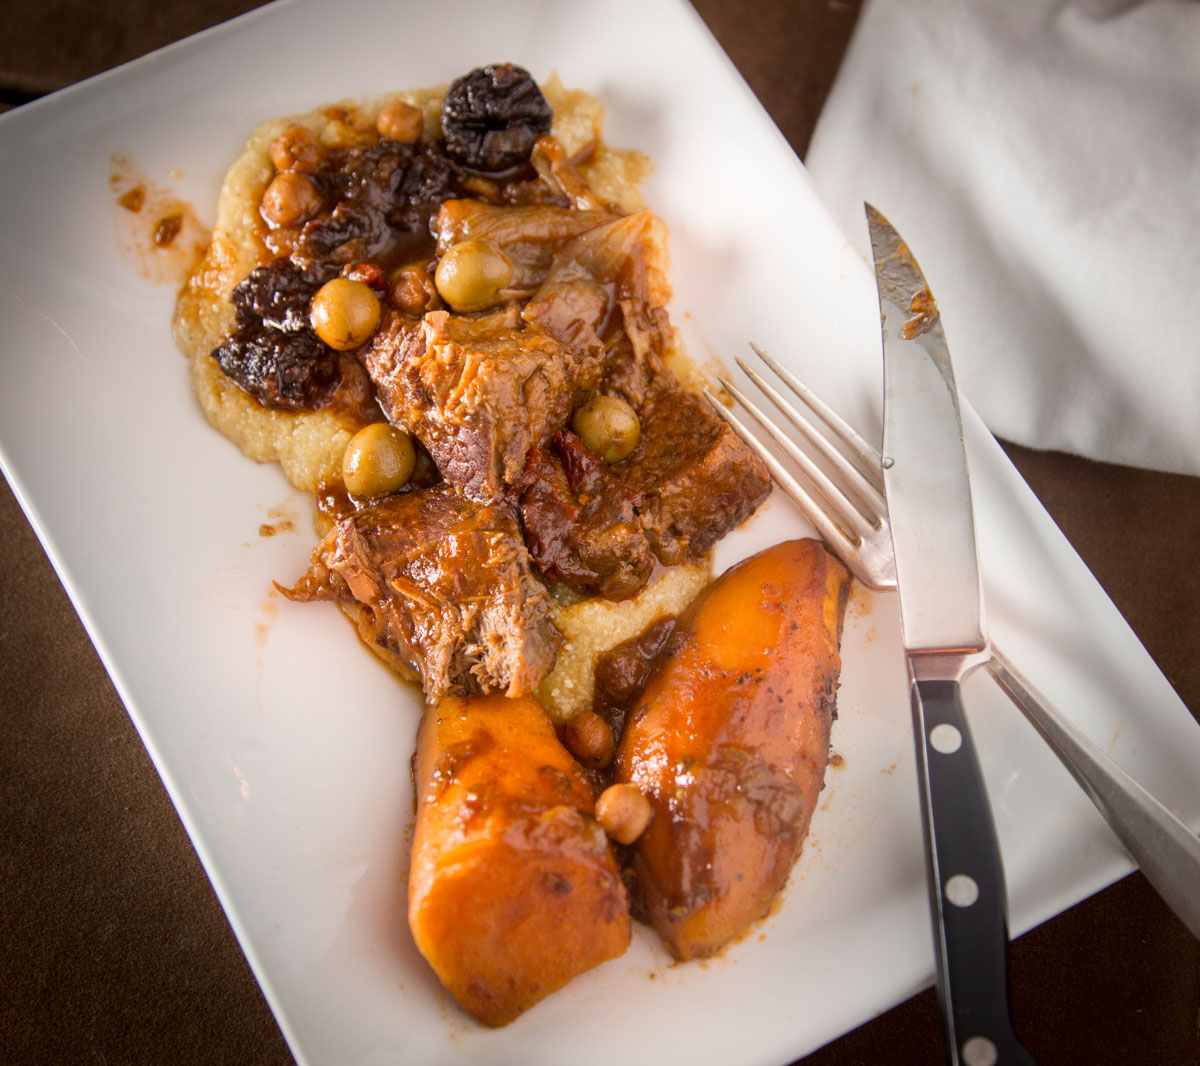 a serving of chipotle pot roast with prunes, olives, chickpeas, and sweet potatoes